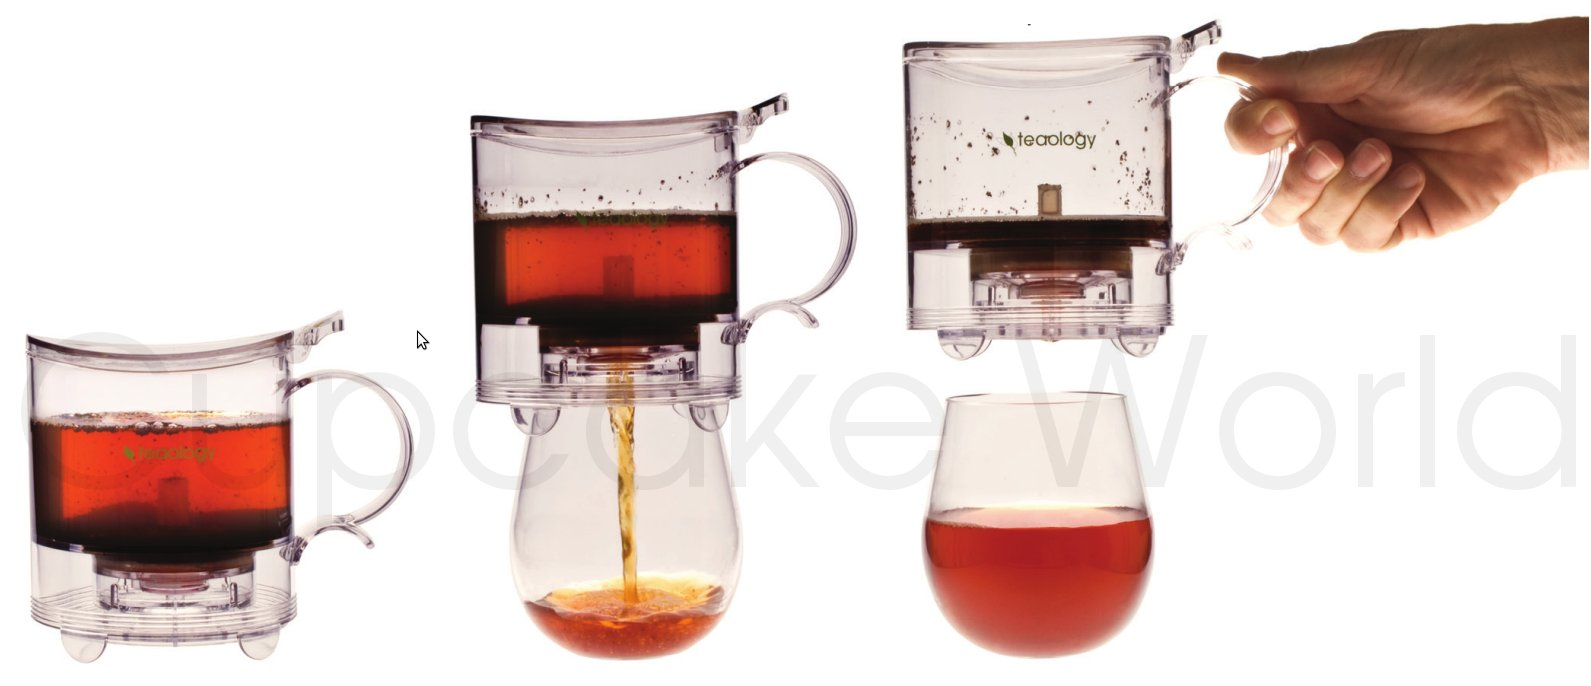 TEAOLOGY TEA MAKER WITH STAINLESS STEEL STRAINER INFUSER 500ML